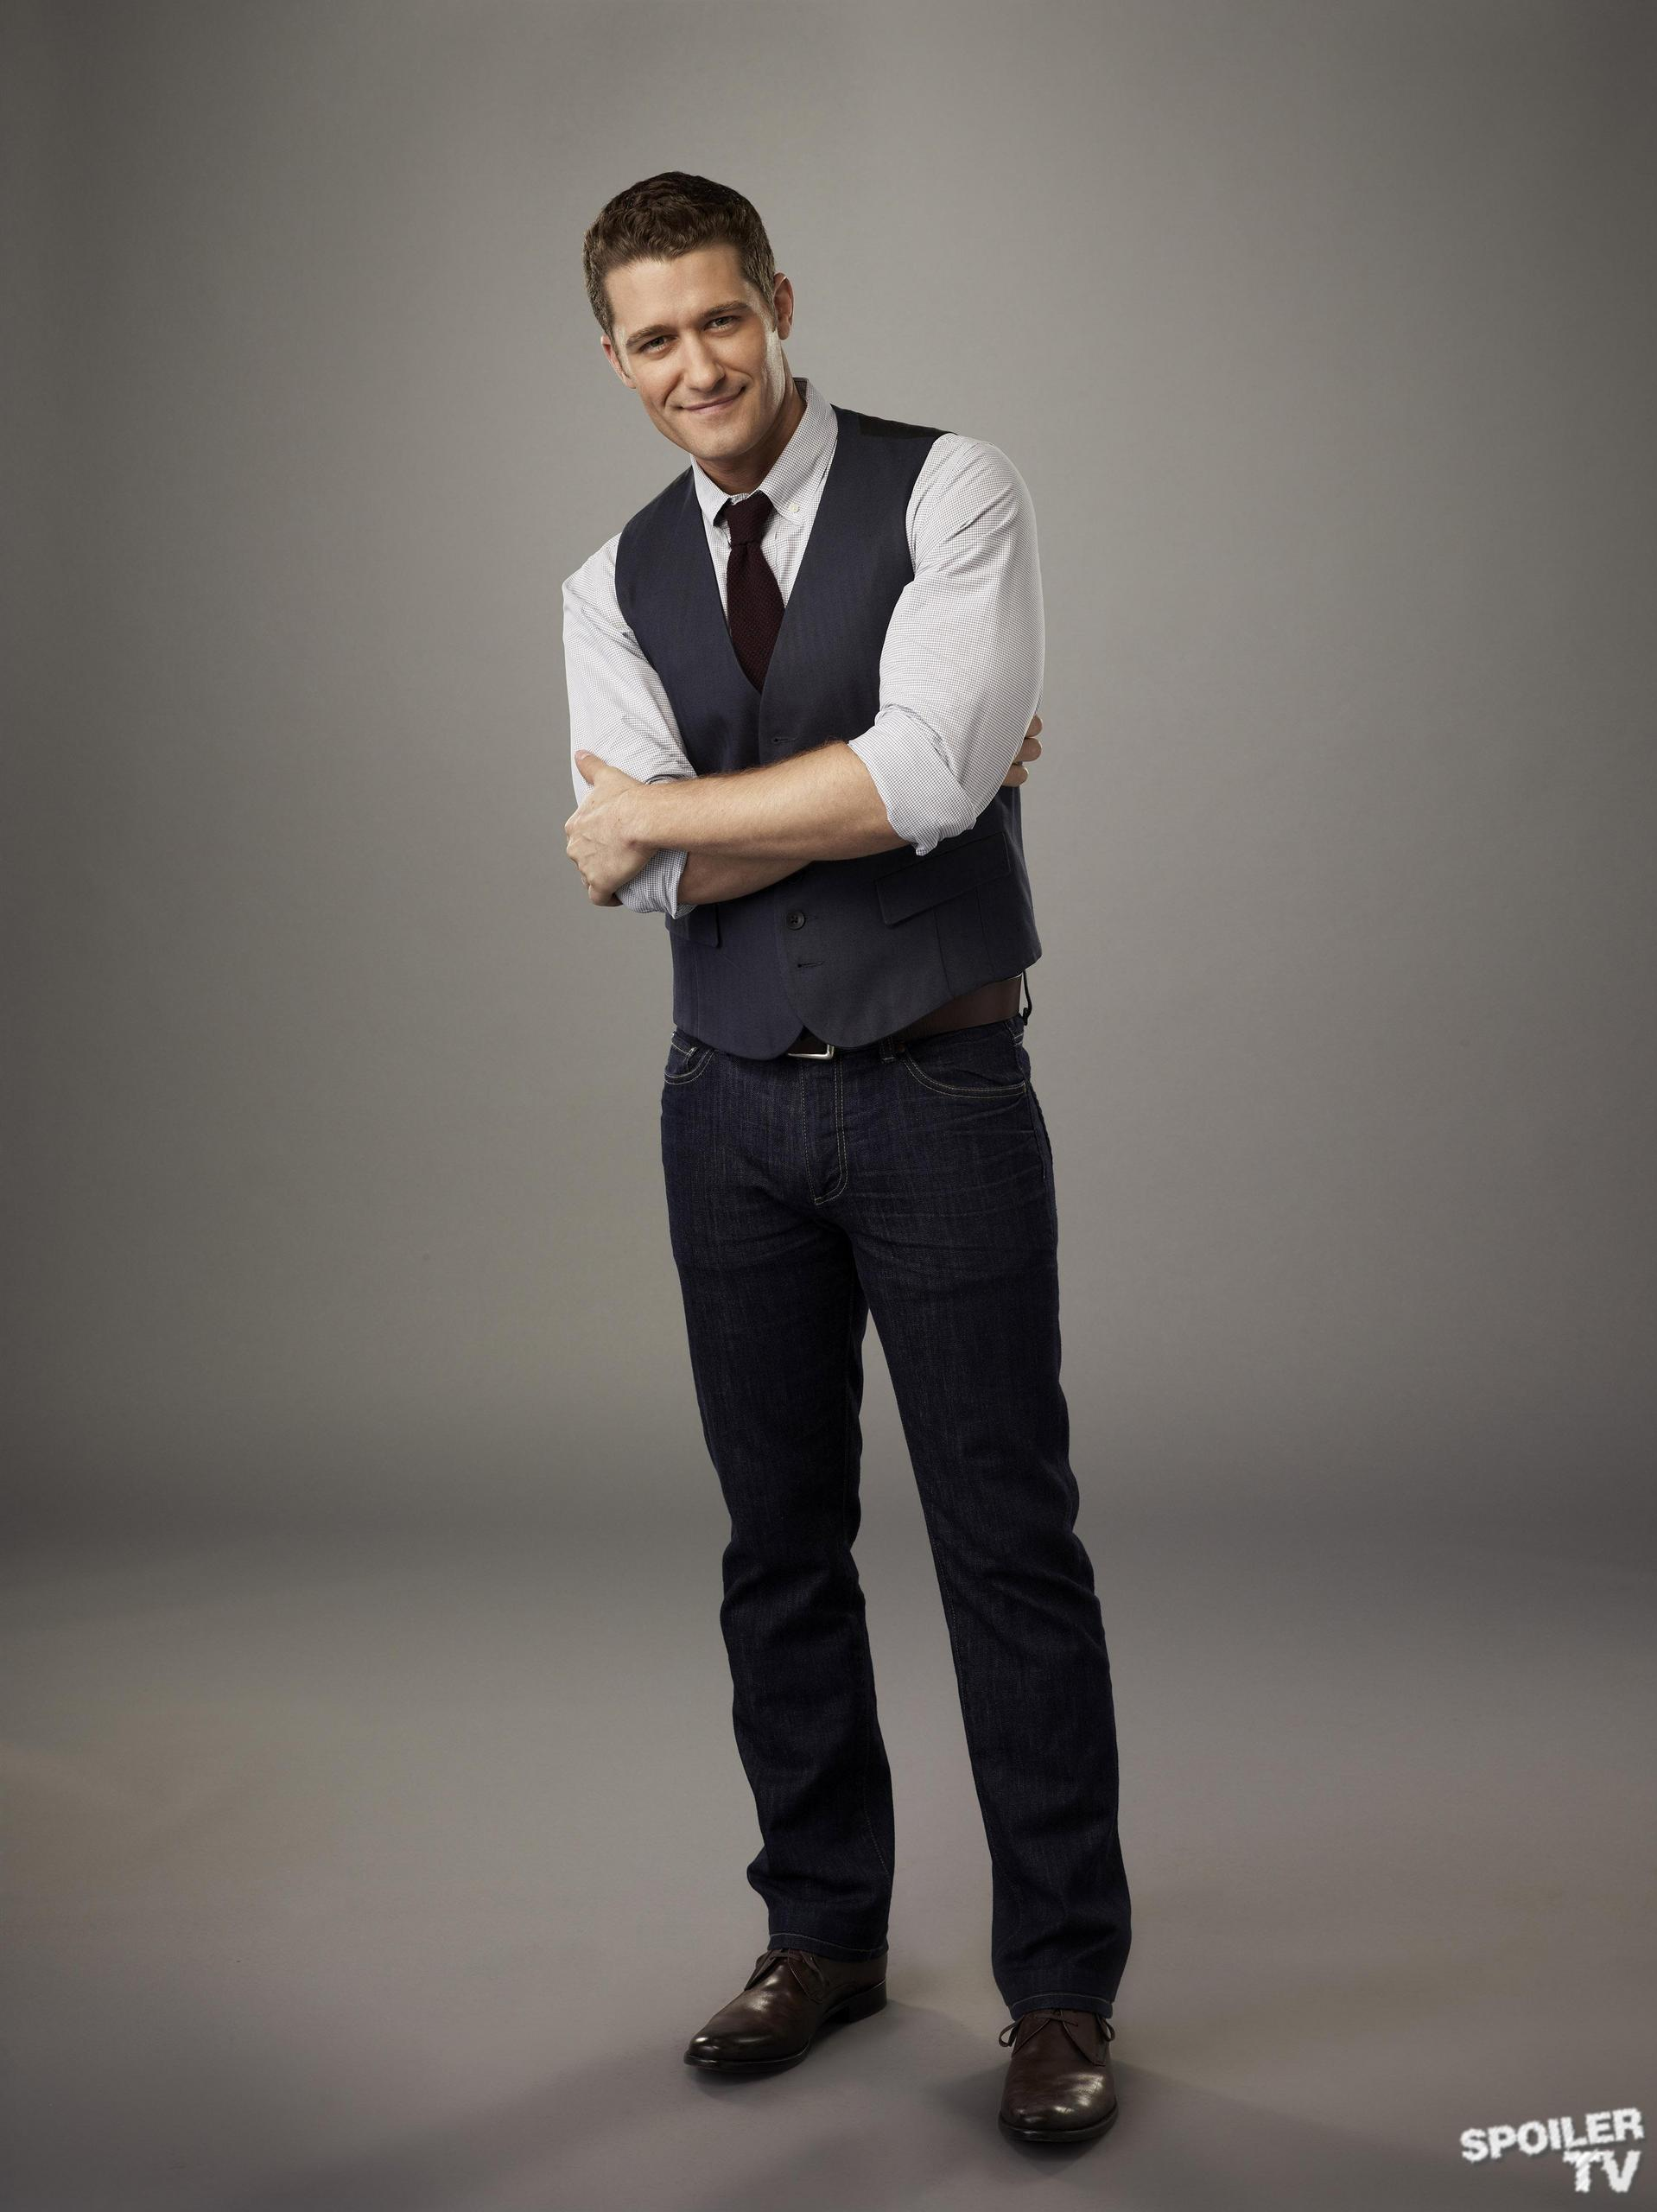 Glee images Glee - Season 4 - Exclusive Cast Promotional